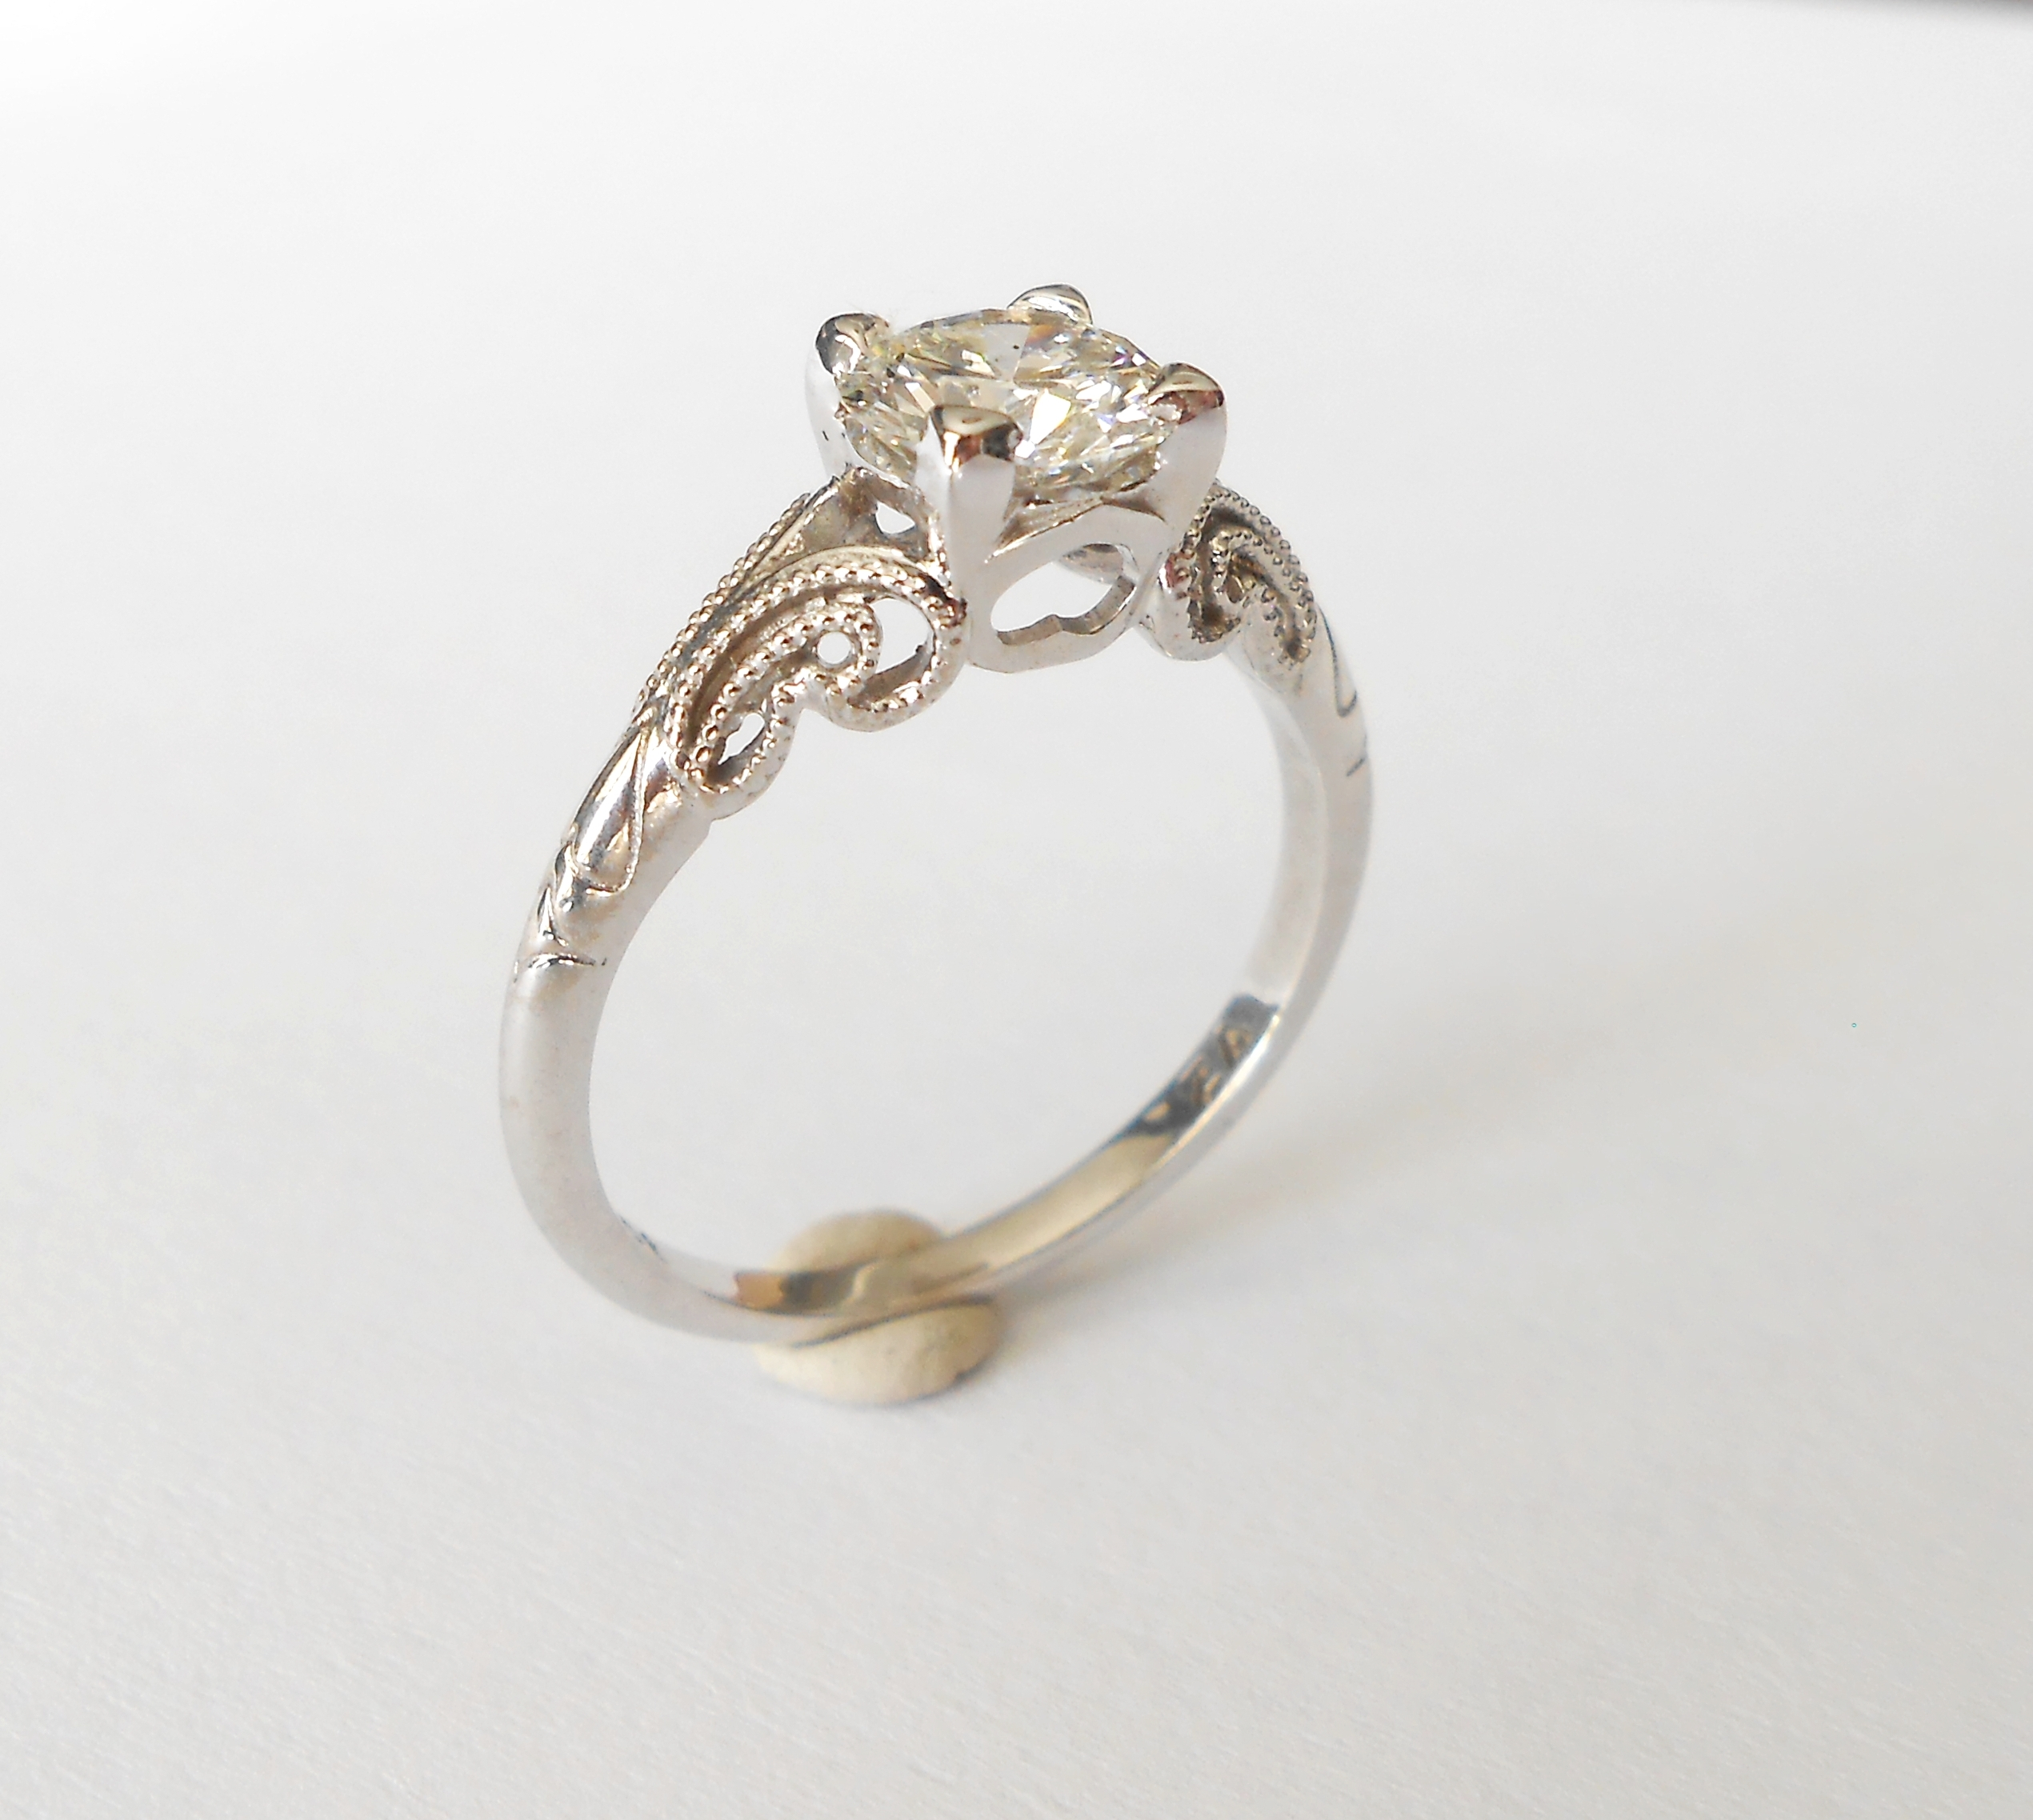 bands gold inspirational ring wedding wnqggbmlfqwftilnraps rose victorian diamond antique